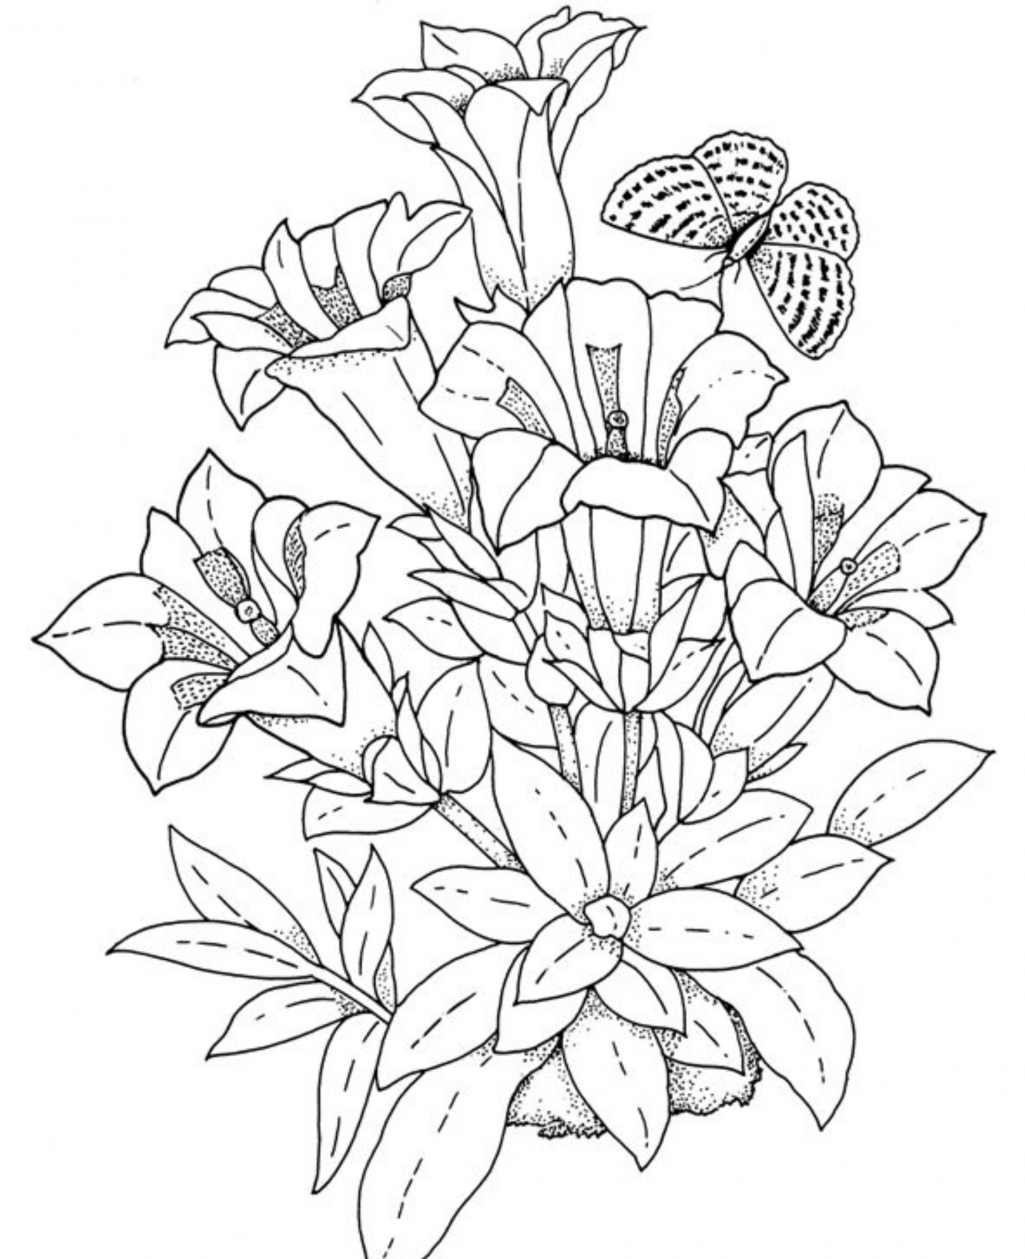 colouring page of flowers free printable flower coloring pages for kids best flowers colouring page of